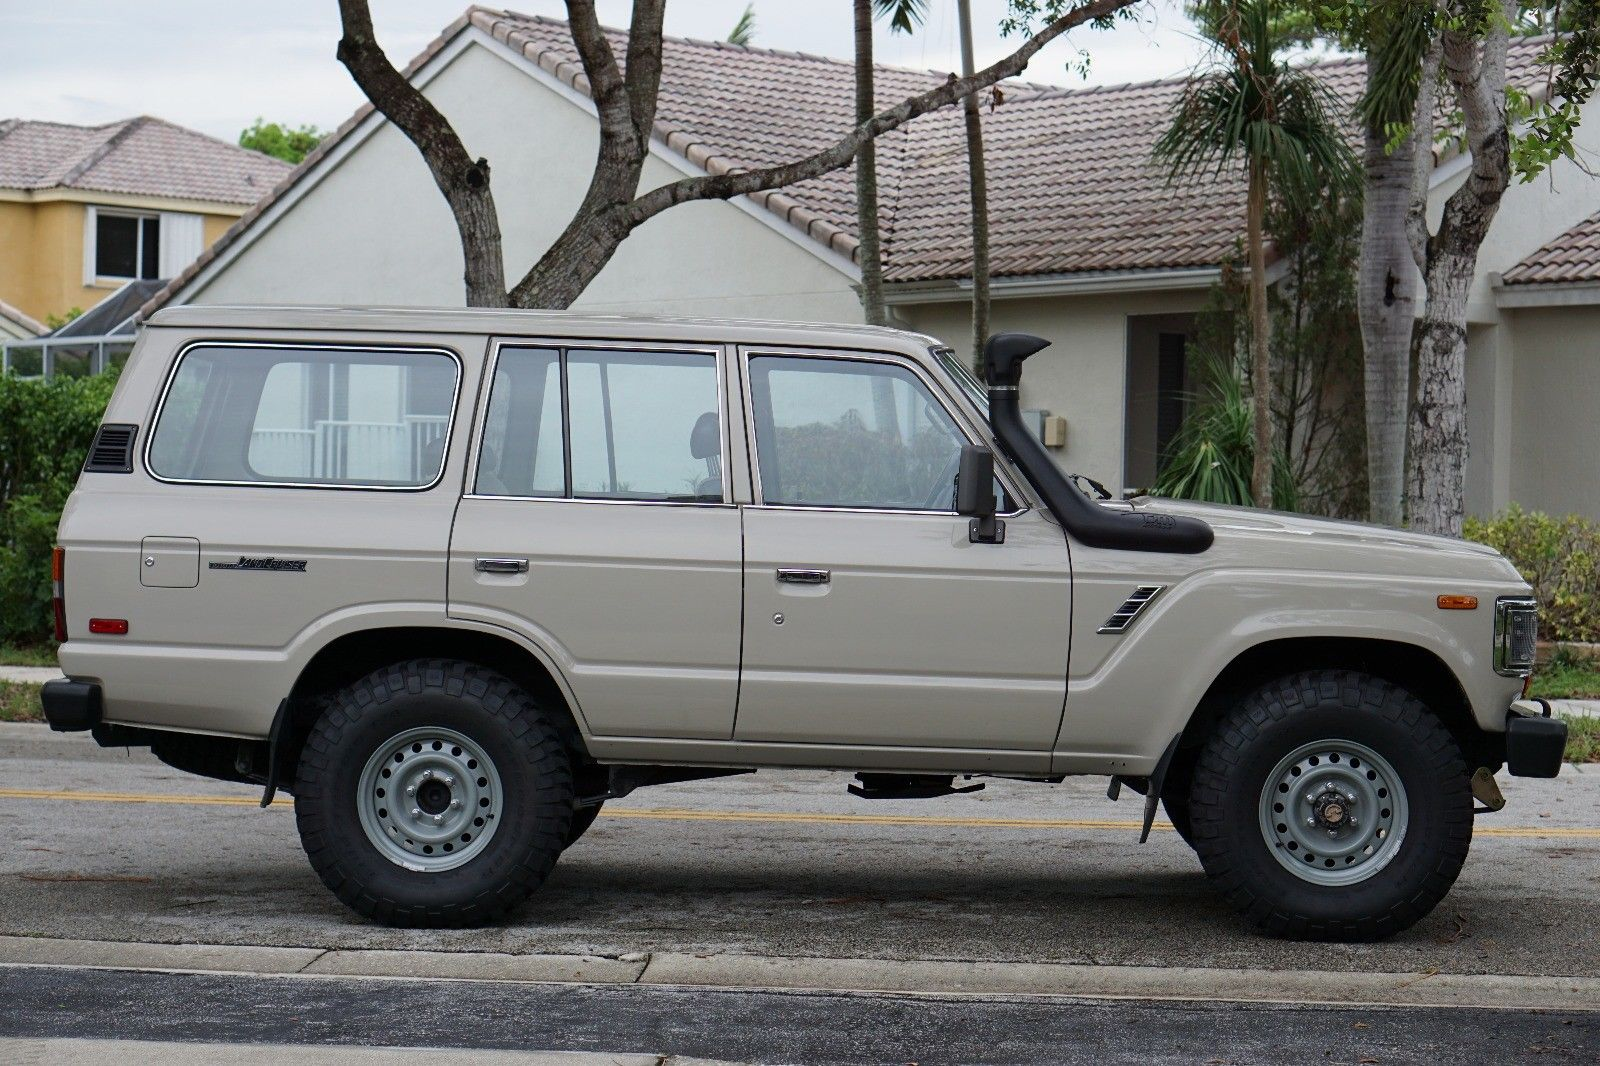 Amazing 1988 Toyota Land Cruiser Fj 62 1988 Toyota Land Cruiser 60